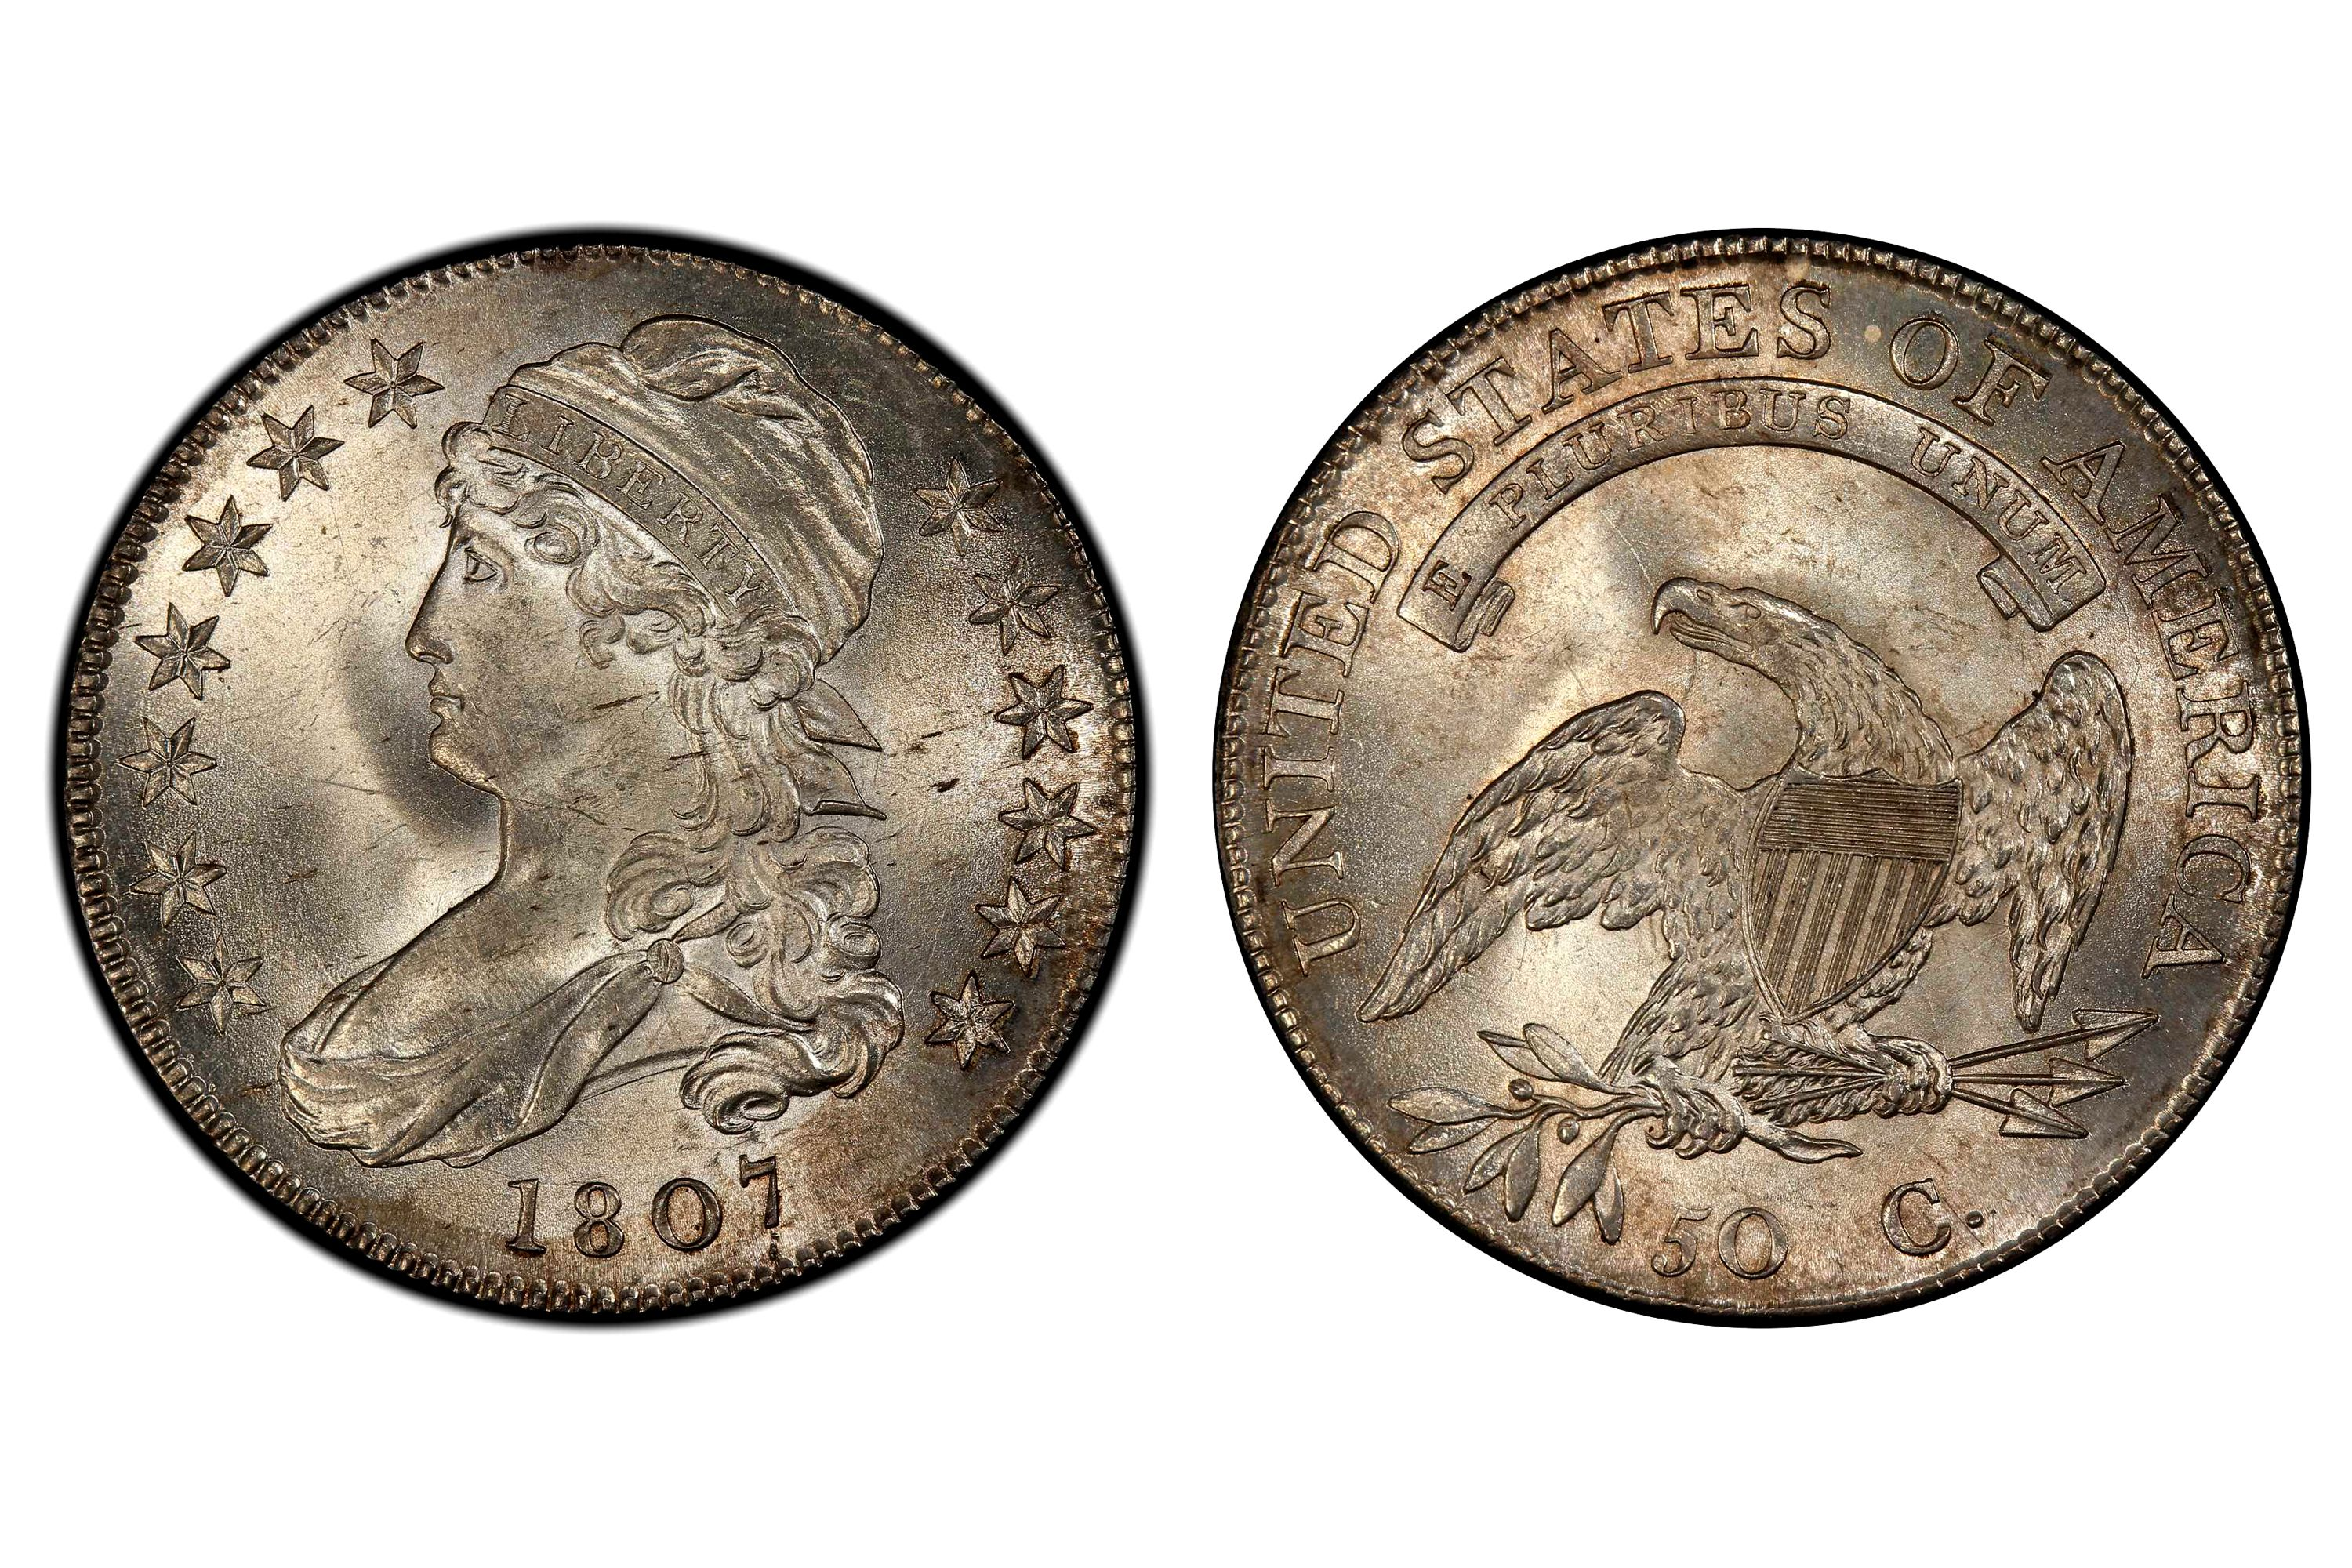 1807 Capped Bust Half Dollar with Large Stars graded MS-66 by PCGS